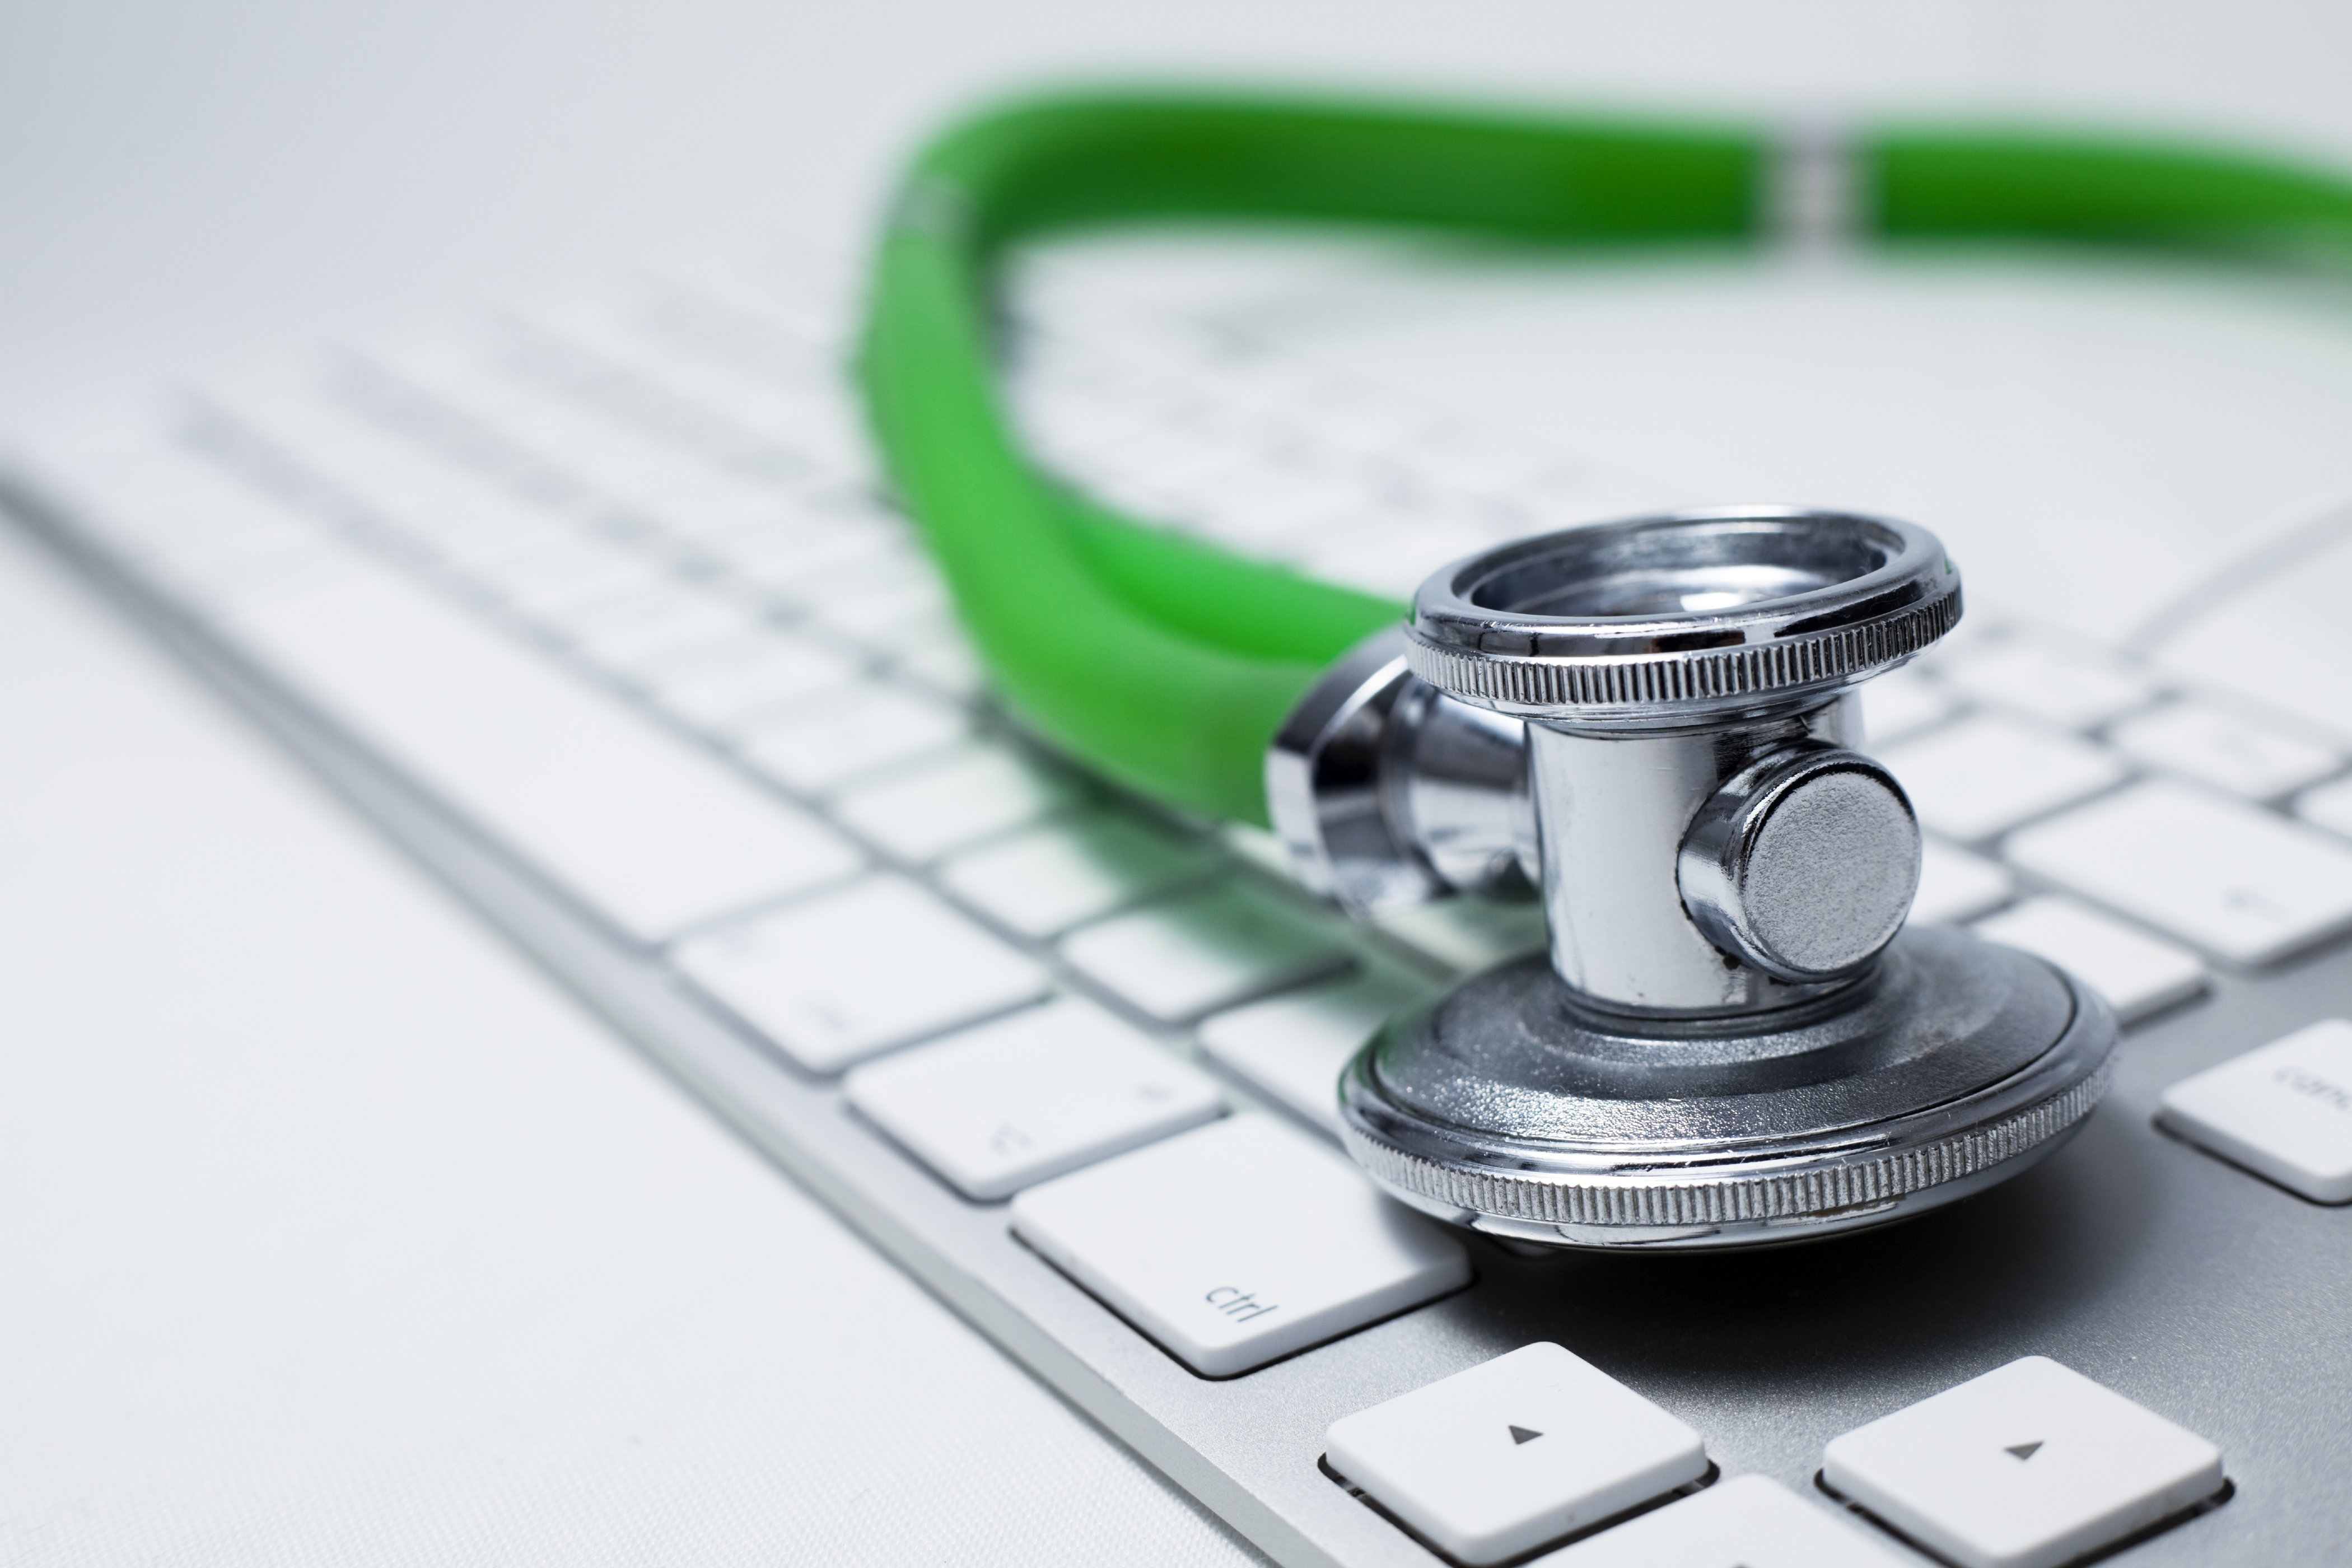 Stethoscope_on_keyboard